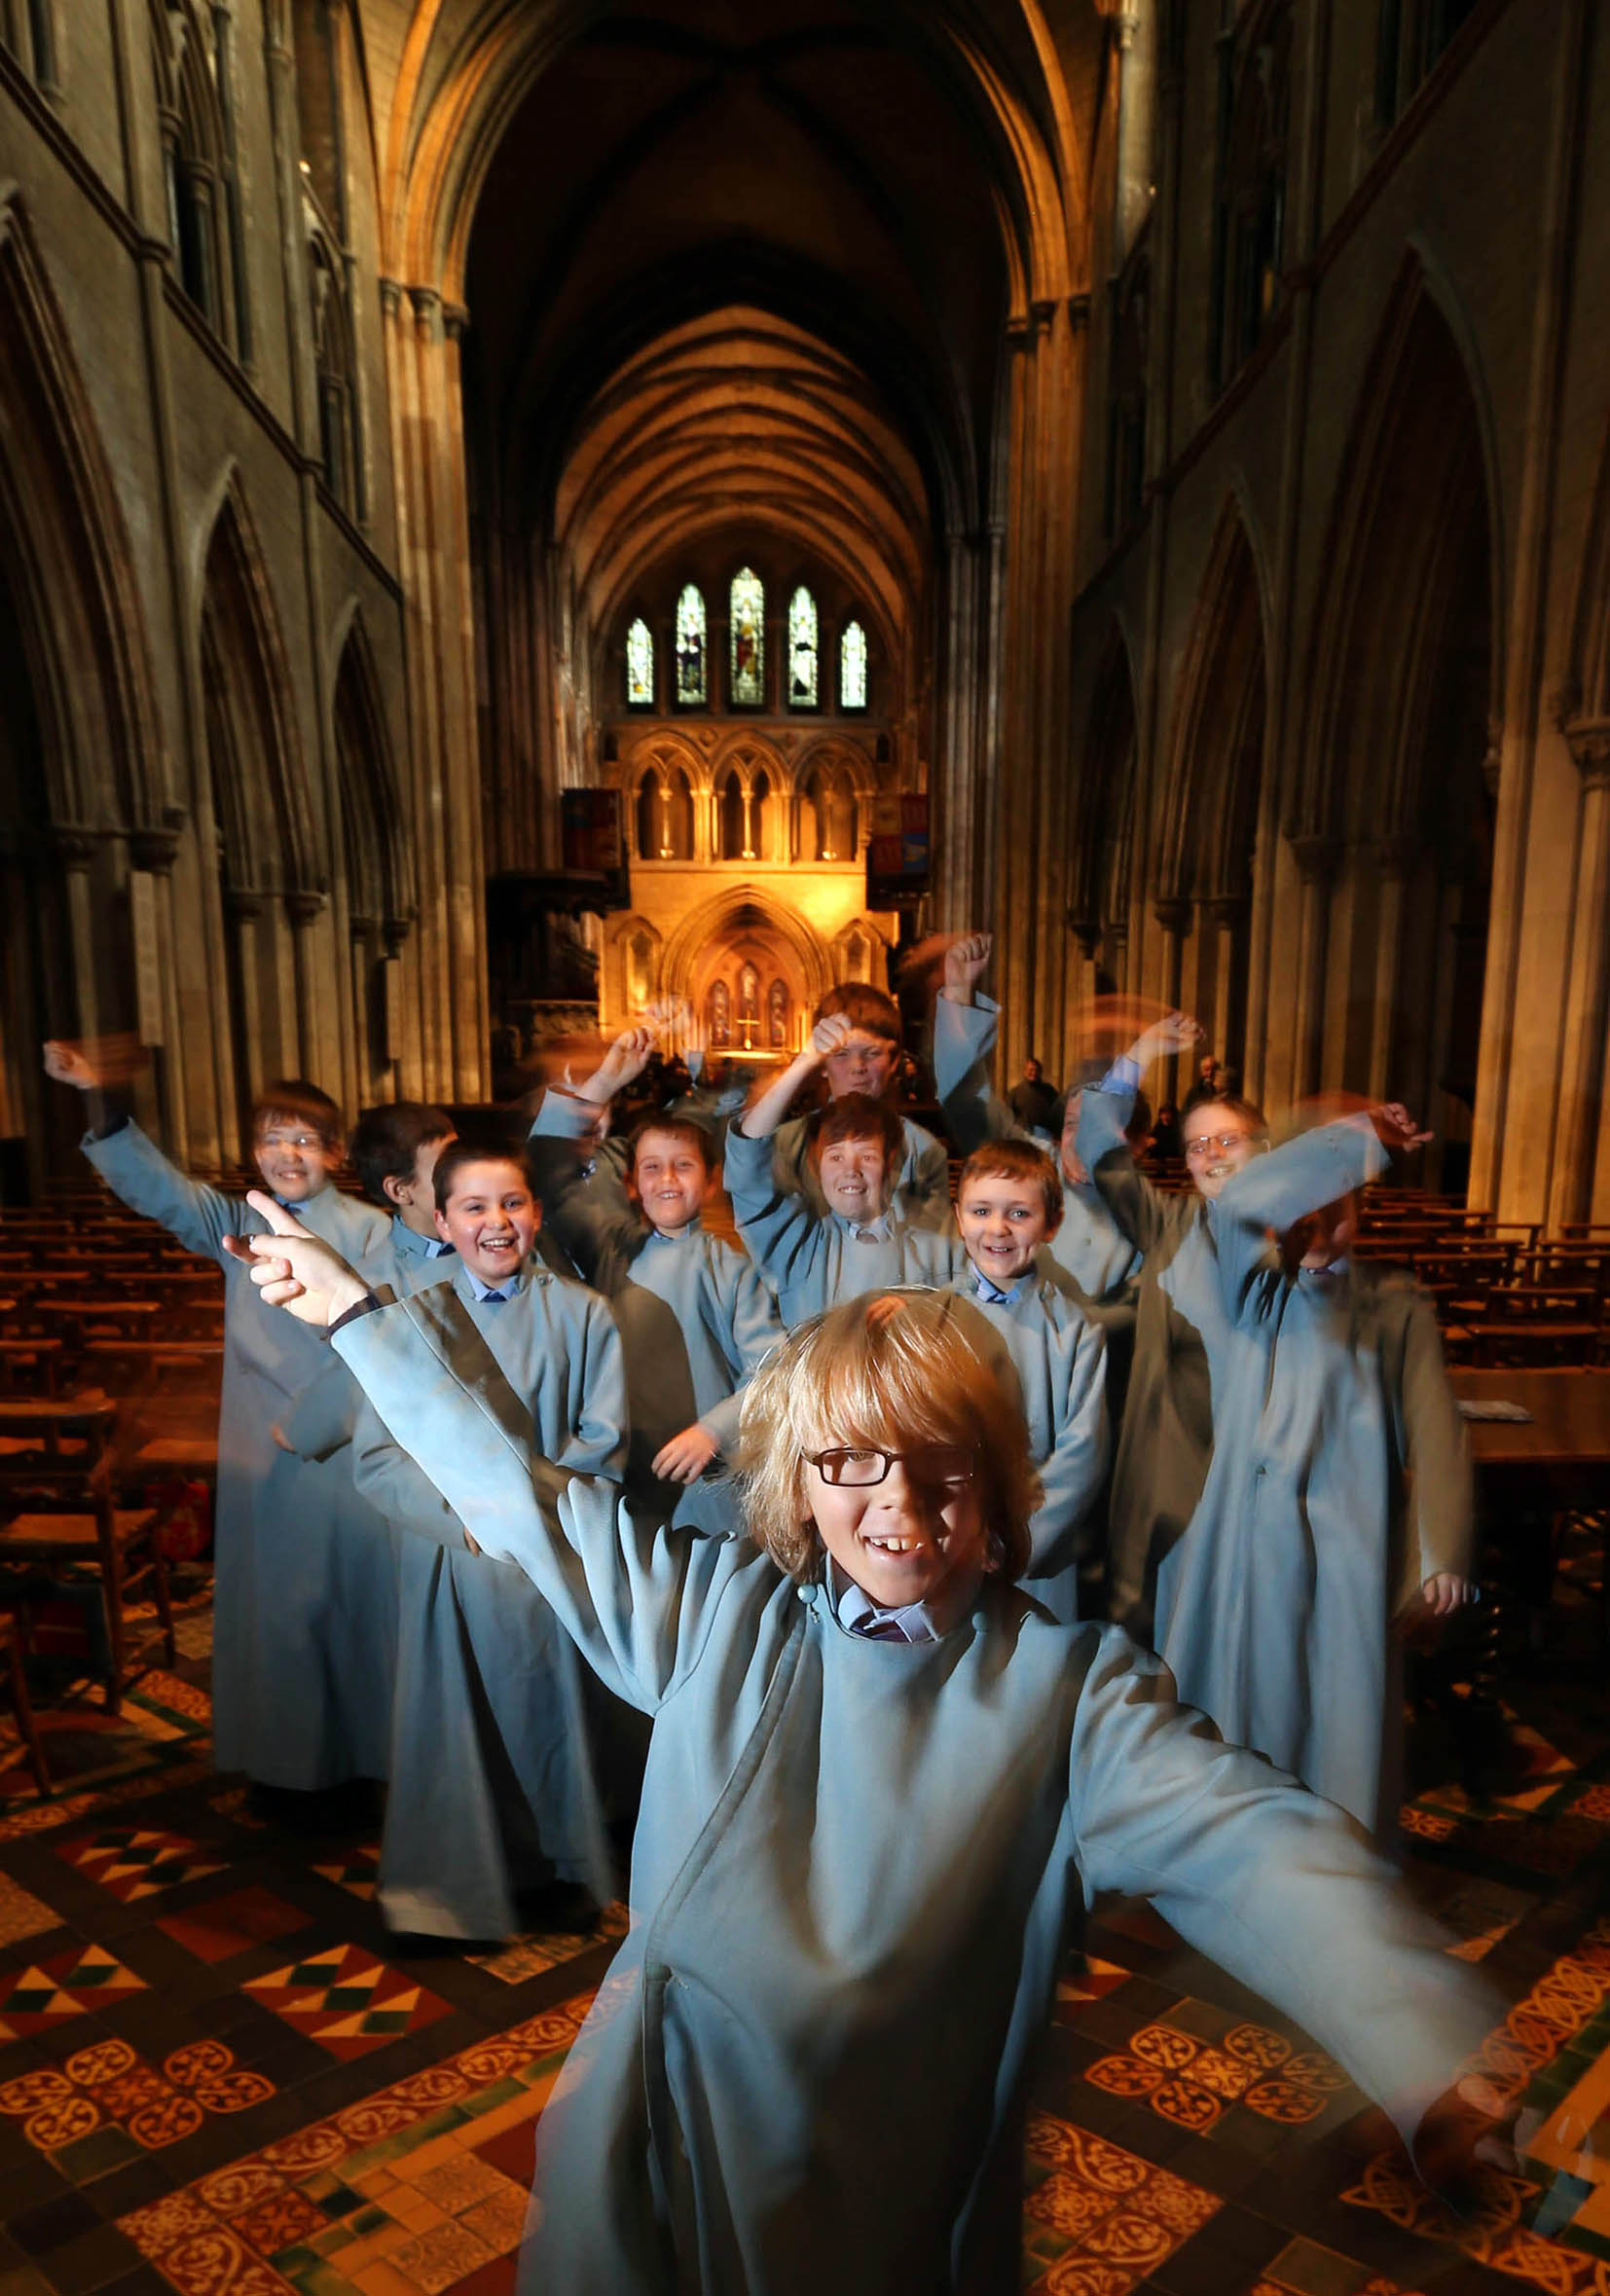 Cathedral Choristers in Concert at Waltham Abbey church.